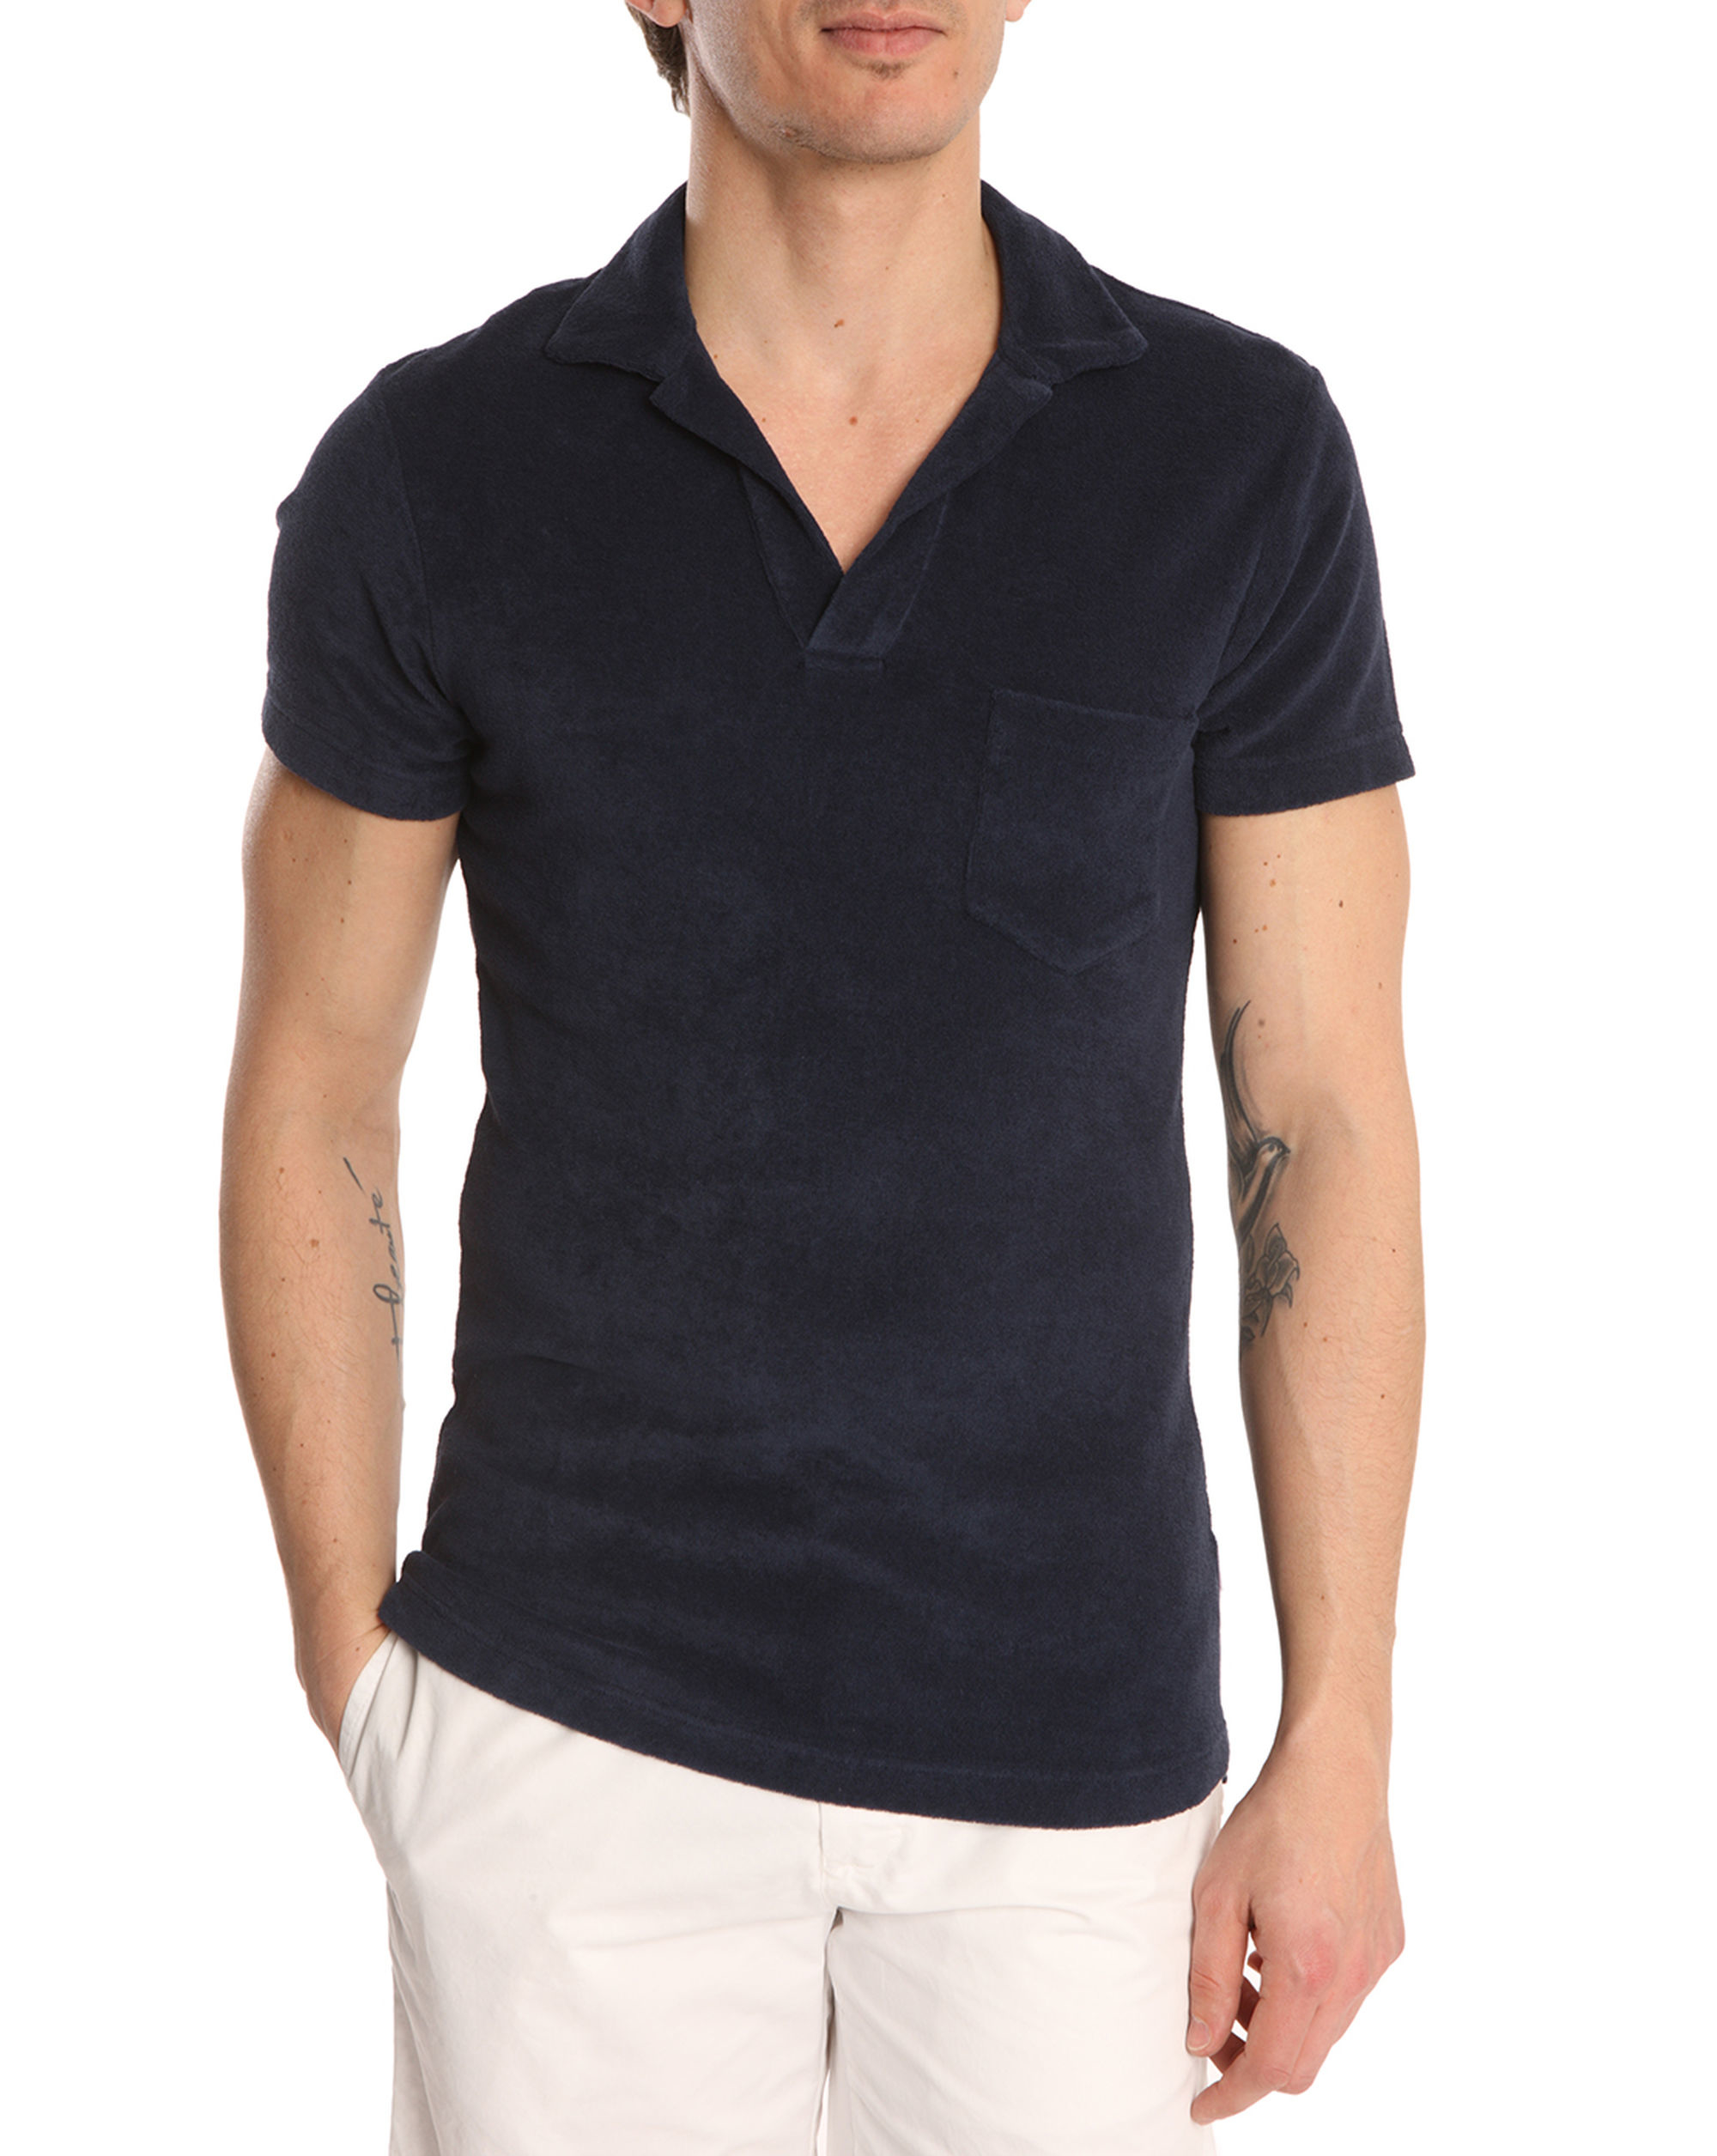 Orlebar brown navy terry cloth polo shirt in blue for men for Mens terry cloth polo shirt